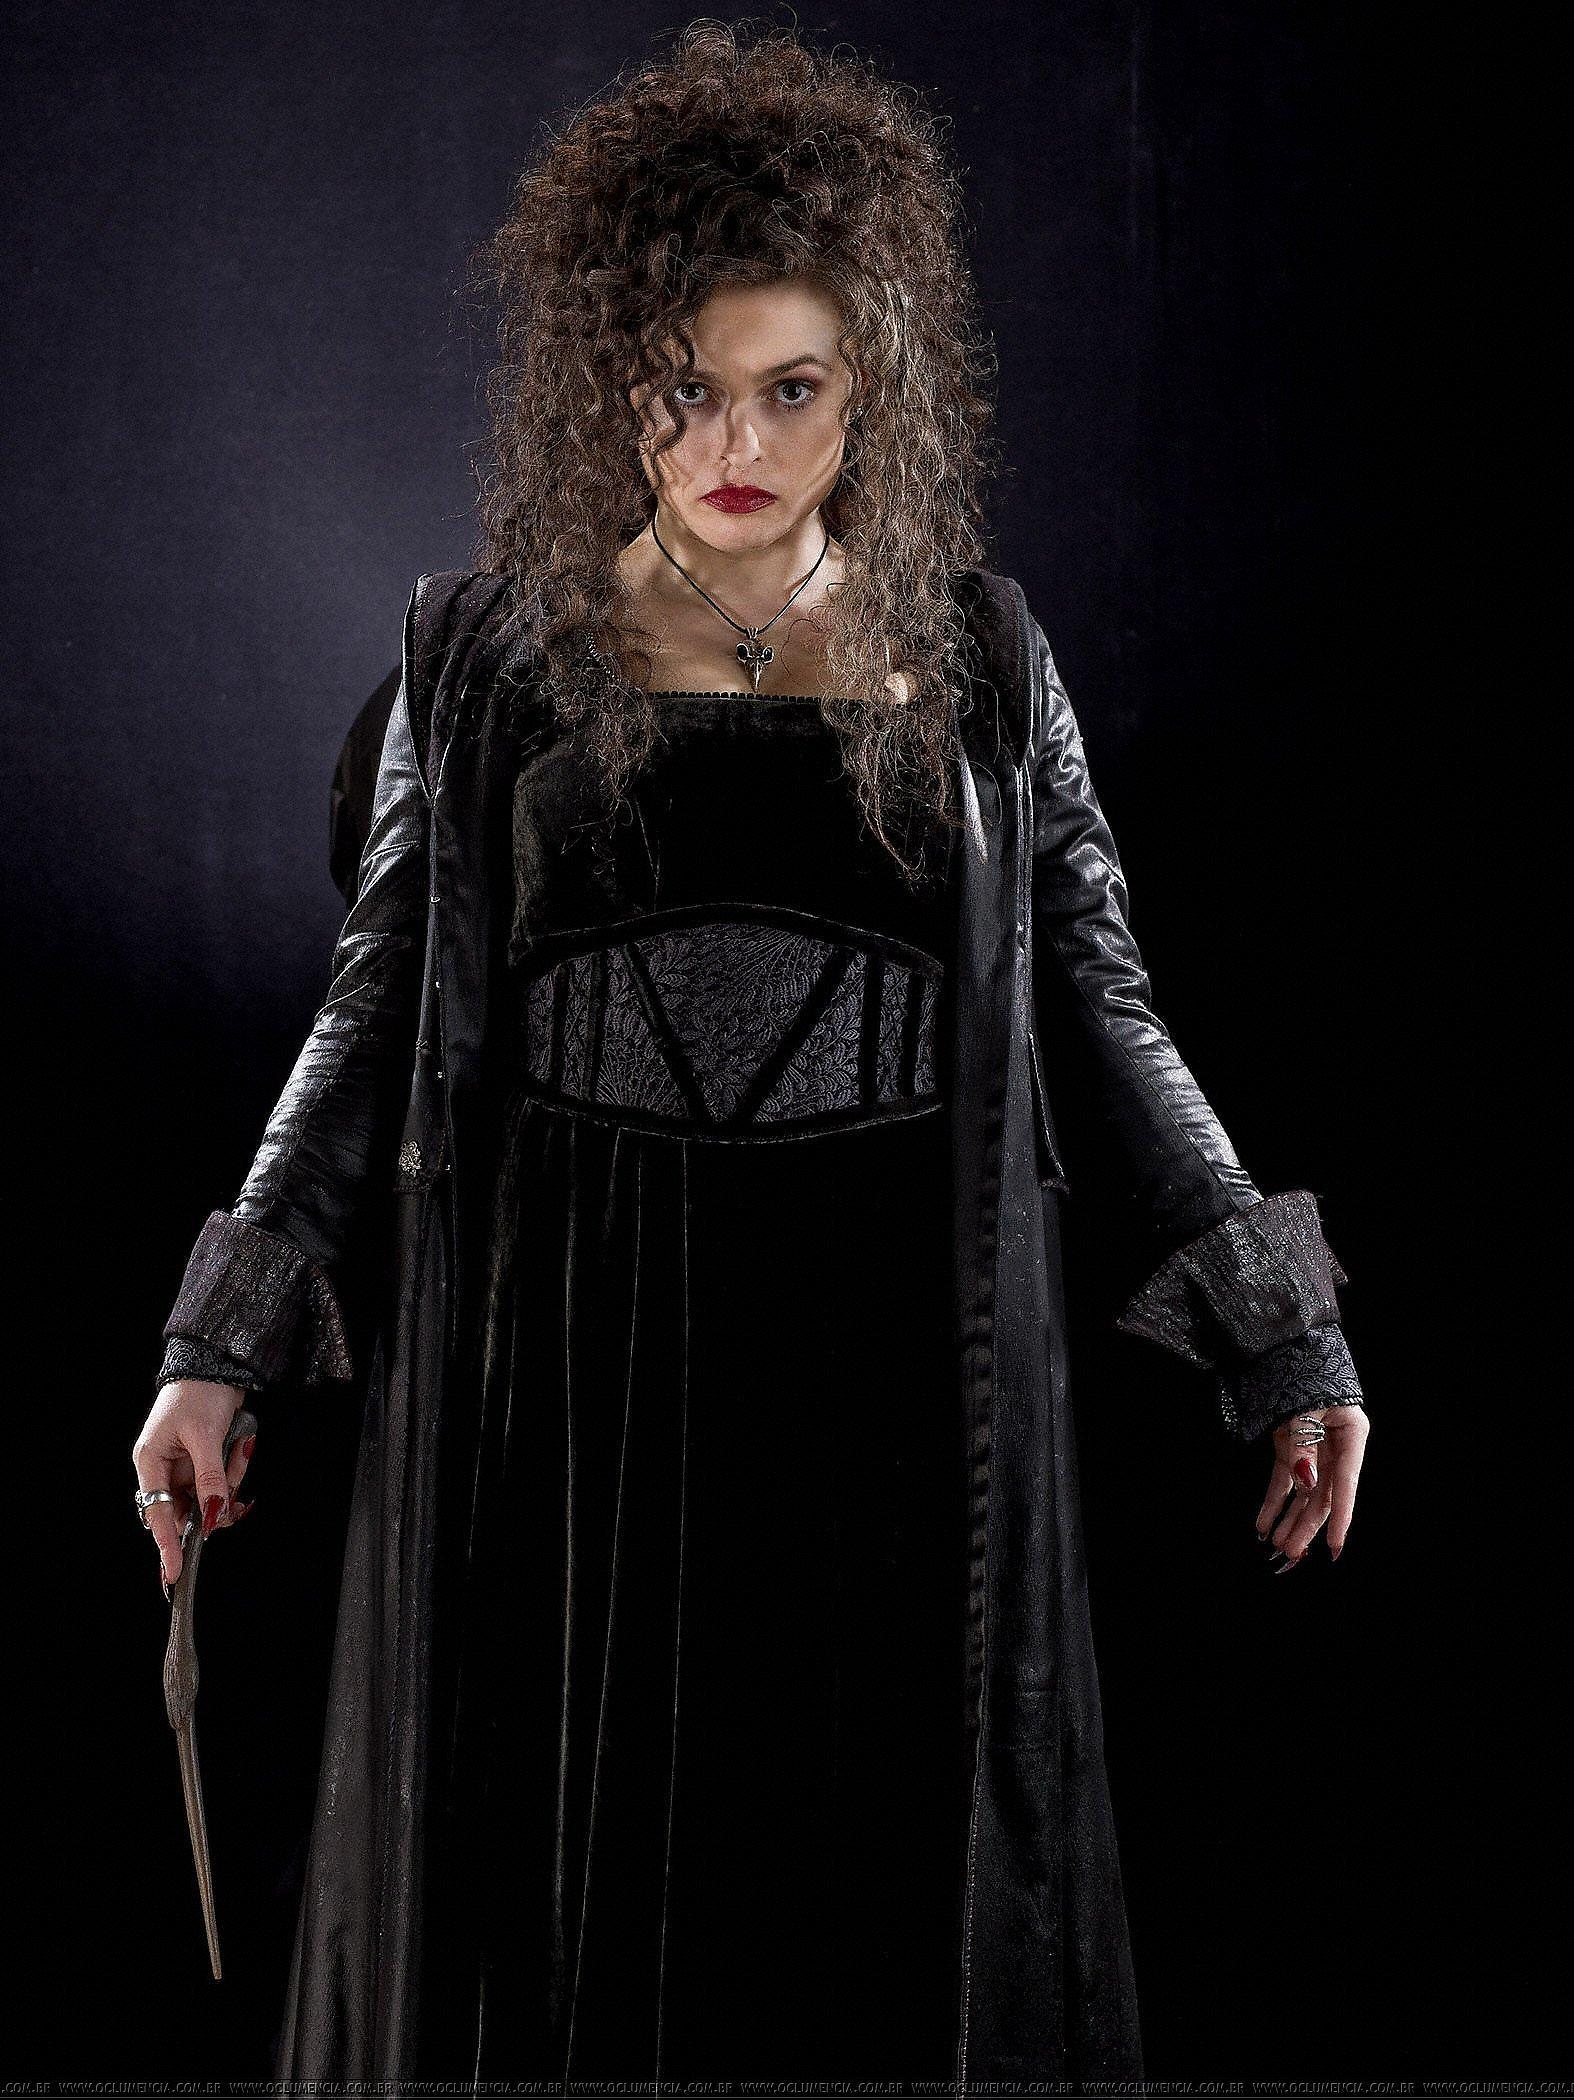 bellatrix van detta harry potter wiki fandom powered by wikia. Black Bedroom Furniture Sets. Home Design Ideas